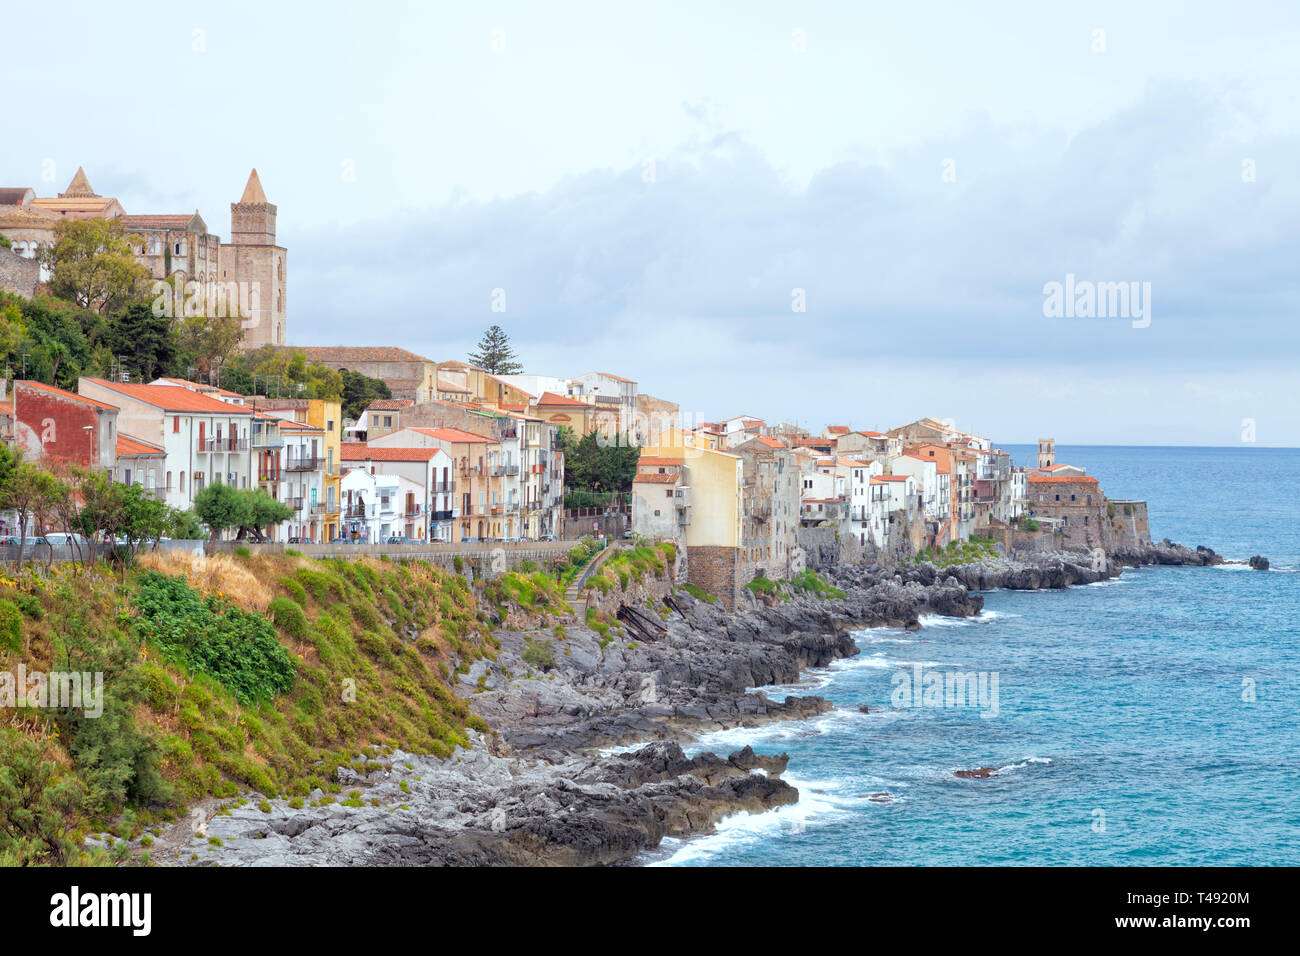 Rocky coast of Sicilian seaside resort of Cefalu with historic houses, cathedral on the hill, promenade . - Stock Image